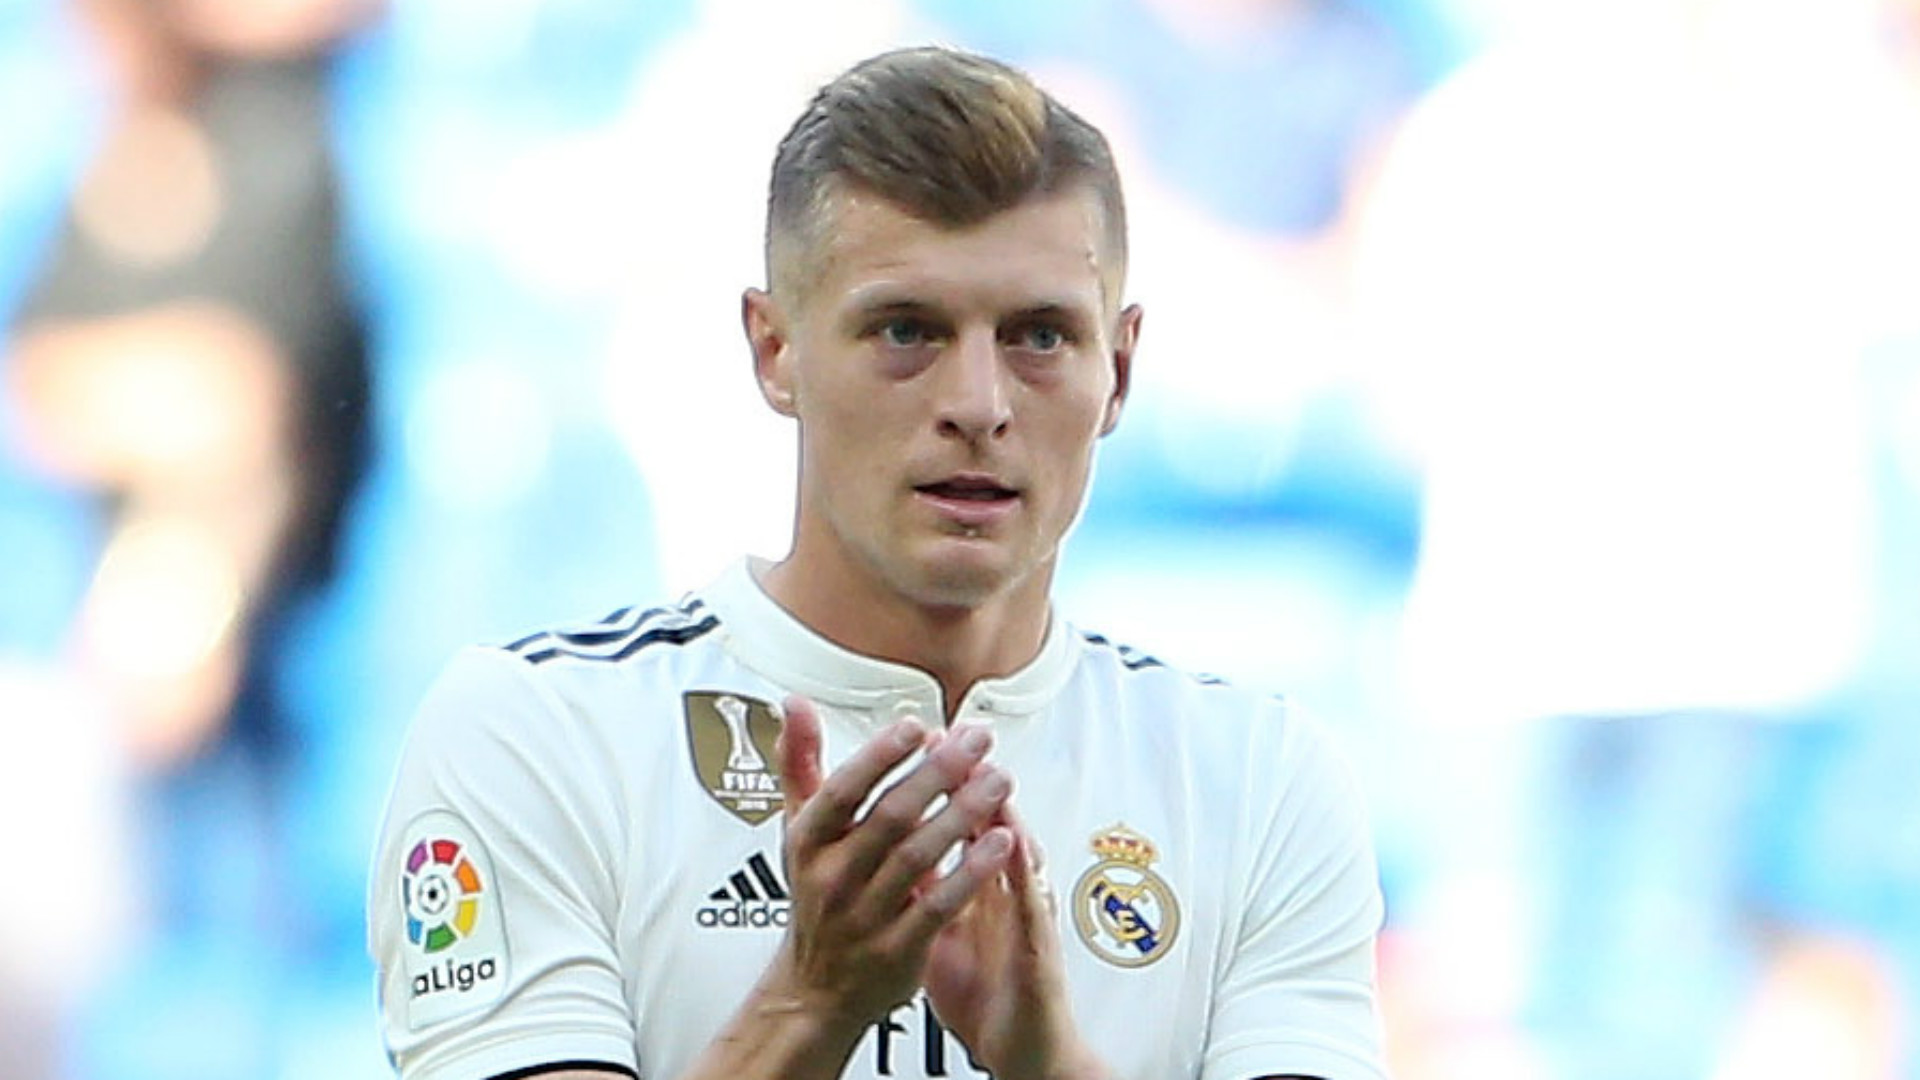 Toni Kroos: Real Madrid midfielder signs new four-year deal